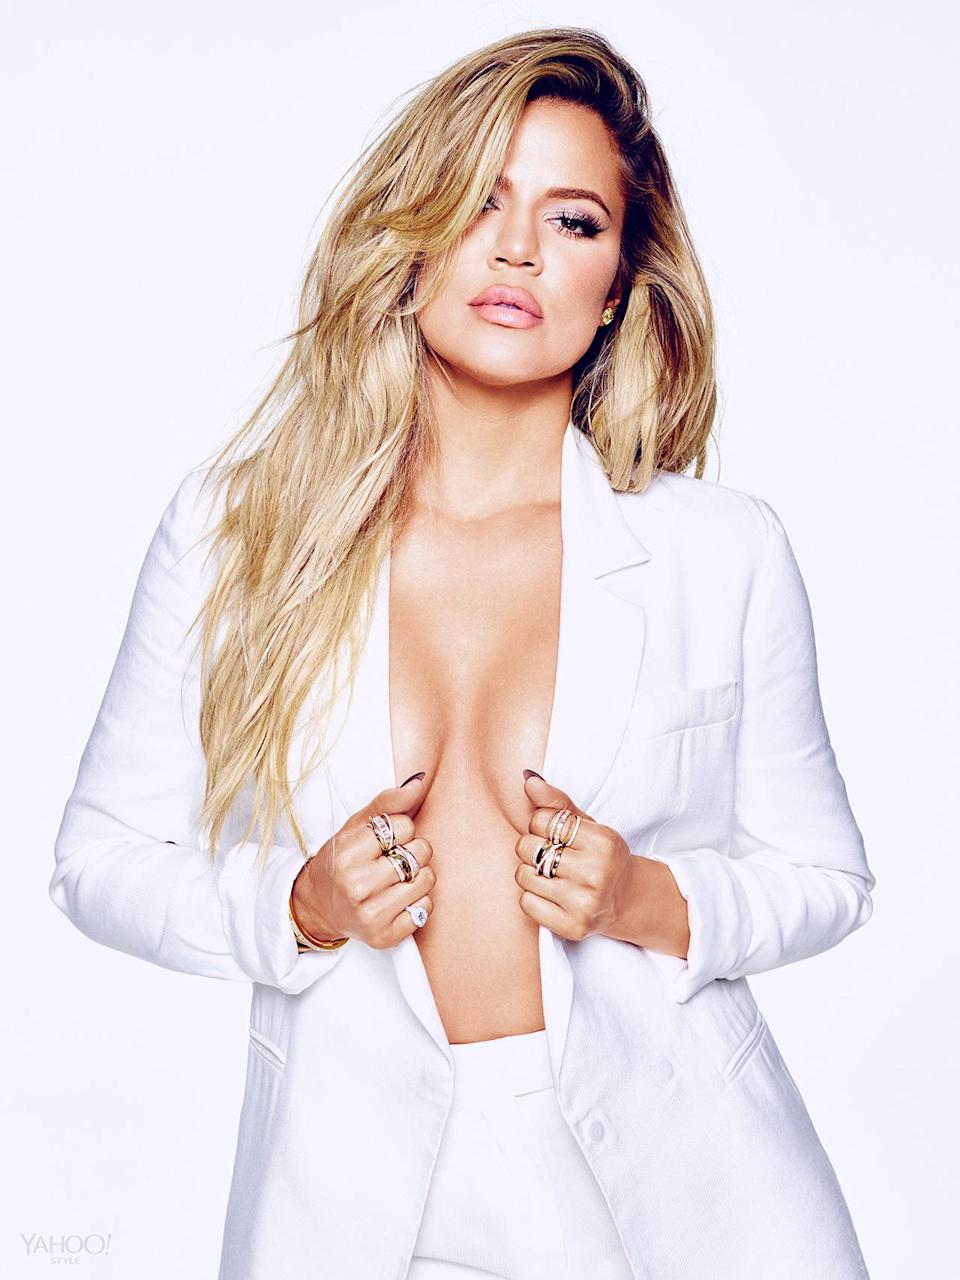 """<p>""""I could have lost weight six years ago, I could have done all of that. I don't want to do something for somebody else,"""" Khloé says. Instead, she started exercising as a stress reliever. Her toned physique and the fact that now she's having more fun with fashion (hello, bodysuits and denim) are great side effects, but not the end game. </p><p><i>Amanda Wakeley Blazer, Price Upon Request, <a href=""""http://www.amandawakeley.com/shop/lifestyle/tux-times"""" rel=""""nofollow noopener"""" target=""""_blank"""" data-ylk=""""slk:Amandawakeley.com"""" class=""""link rapid-noclick-resp"""">Amandawakeley.com</a><br>Amanda Wakeley Pants, Price Upon Request, <a href=""""http://www.amandawakeley.com/shop/lifestyle/tux-times"""" rel=""""nofollow noopener"""" target=""""_blank"""" data-ylk=""""slk:Amandawakeley.com"""" class=""""link rapid-noclick-resp"""">Amandawakeley.com</a><br>SHAY Baugette Orbit Ring in 18k Gold and Diamonds, $7,560, <a href=""""http://www.shayfinejewelry.com/"""" rel=""""nofollow noopener"""" target=""""_blank"""" data-ylk=""""slk:shayfinejewelry.com"""" class=""""link rapid-noclick-resp"""">shayfinejewelry.com</a><br>SHAY Essential Orbit Ring in 18k Gold and Diamond Orbit Ring, $5,460, <a href=""""http://www.shayfinejewelry.com/"""" rel=""""nofollow noopener"""" target=""""_blank"""" data-ylk=""""slk:http://www.shayfinejewelry.com/"""" class=""""link rapid-noclick-resp"""">http://www.shayfinejewelry.com/</a><br>SHAY 5 Row Closed Mixed Diamond Ring, $7,140, <a href=""""http://www.shayfinejewelry.com/"""" rel=""""nofollow noopener"""" target=""""_blank"""" data-ylk=""""slk:http://www.shayfinejewelry.com/"""" class=""""link rapid-noclick-resp"""">http://www.shayfinejewelry.com/</a><br>SHAY Essential Pave Link Barcelet, $16,380, <a href=""""http://www.shayfinejewelry.com/"""" rel=""""nofollow noopener"""" target=""""_blank"""" data-ylk=""""slk:shayfinejewelry.com"""" class=""""link rapid-noclick-resp"""">shayfinejewelry.com</a><br>SHAY Essential Link Pavé ID Bracelet in 18K Gold and Diamonds, $10,080, <a href=""""http://www.shayfinejewelry.com/"""" rel=""""nofollow noopener"""" target=""""_blank"""" data-ylk=""""slk:shayfinejewelry.com"""" class=""""link rapi"""